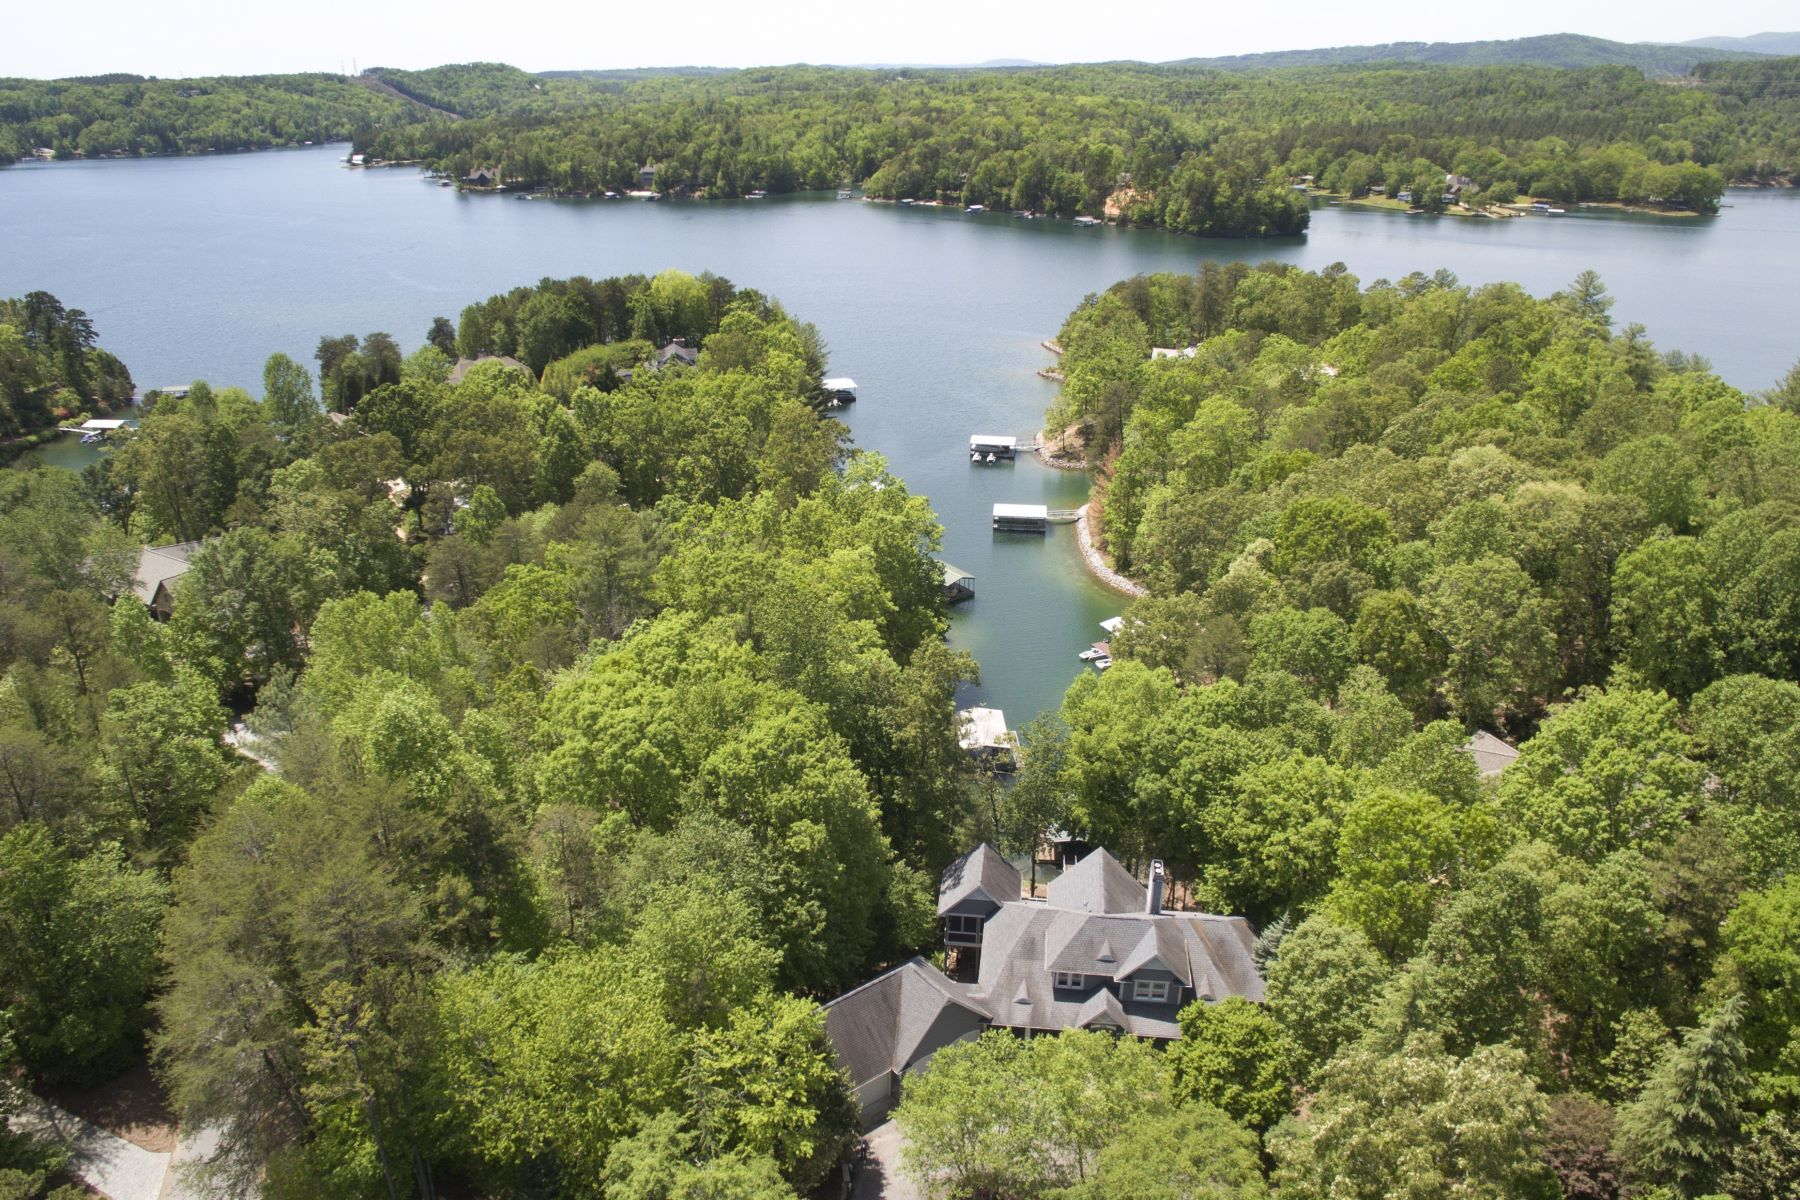 Single Family Home for Sale at Recently Renovated Waterfront Home Including Adjoining Waterfront Lot! 606 Wind Flower Drive + Lot S31 The Cliffs At Keowee Vineyards, Sunset, South Carolina, 29685 United States